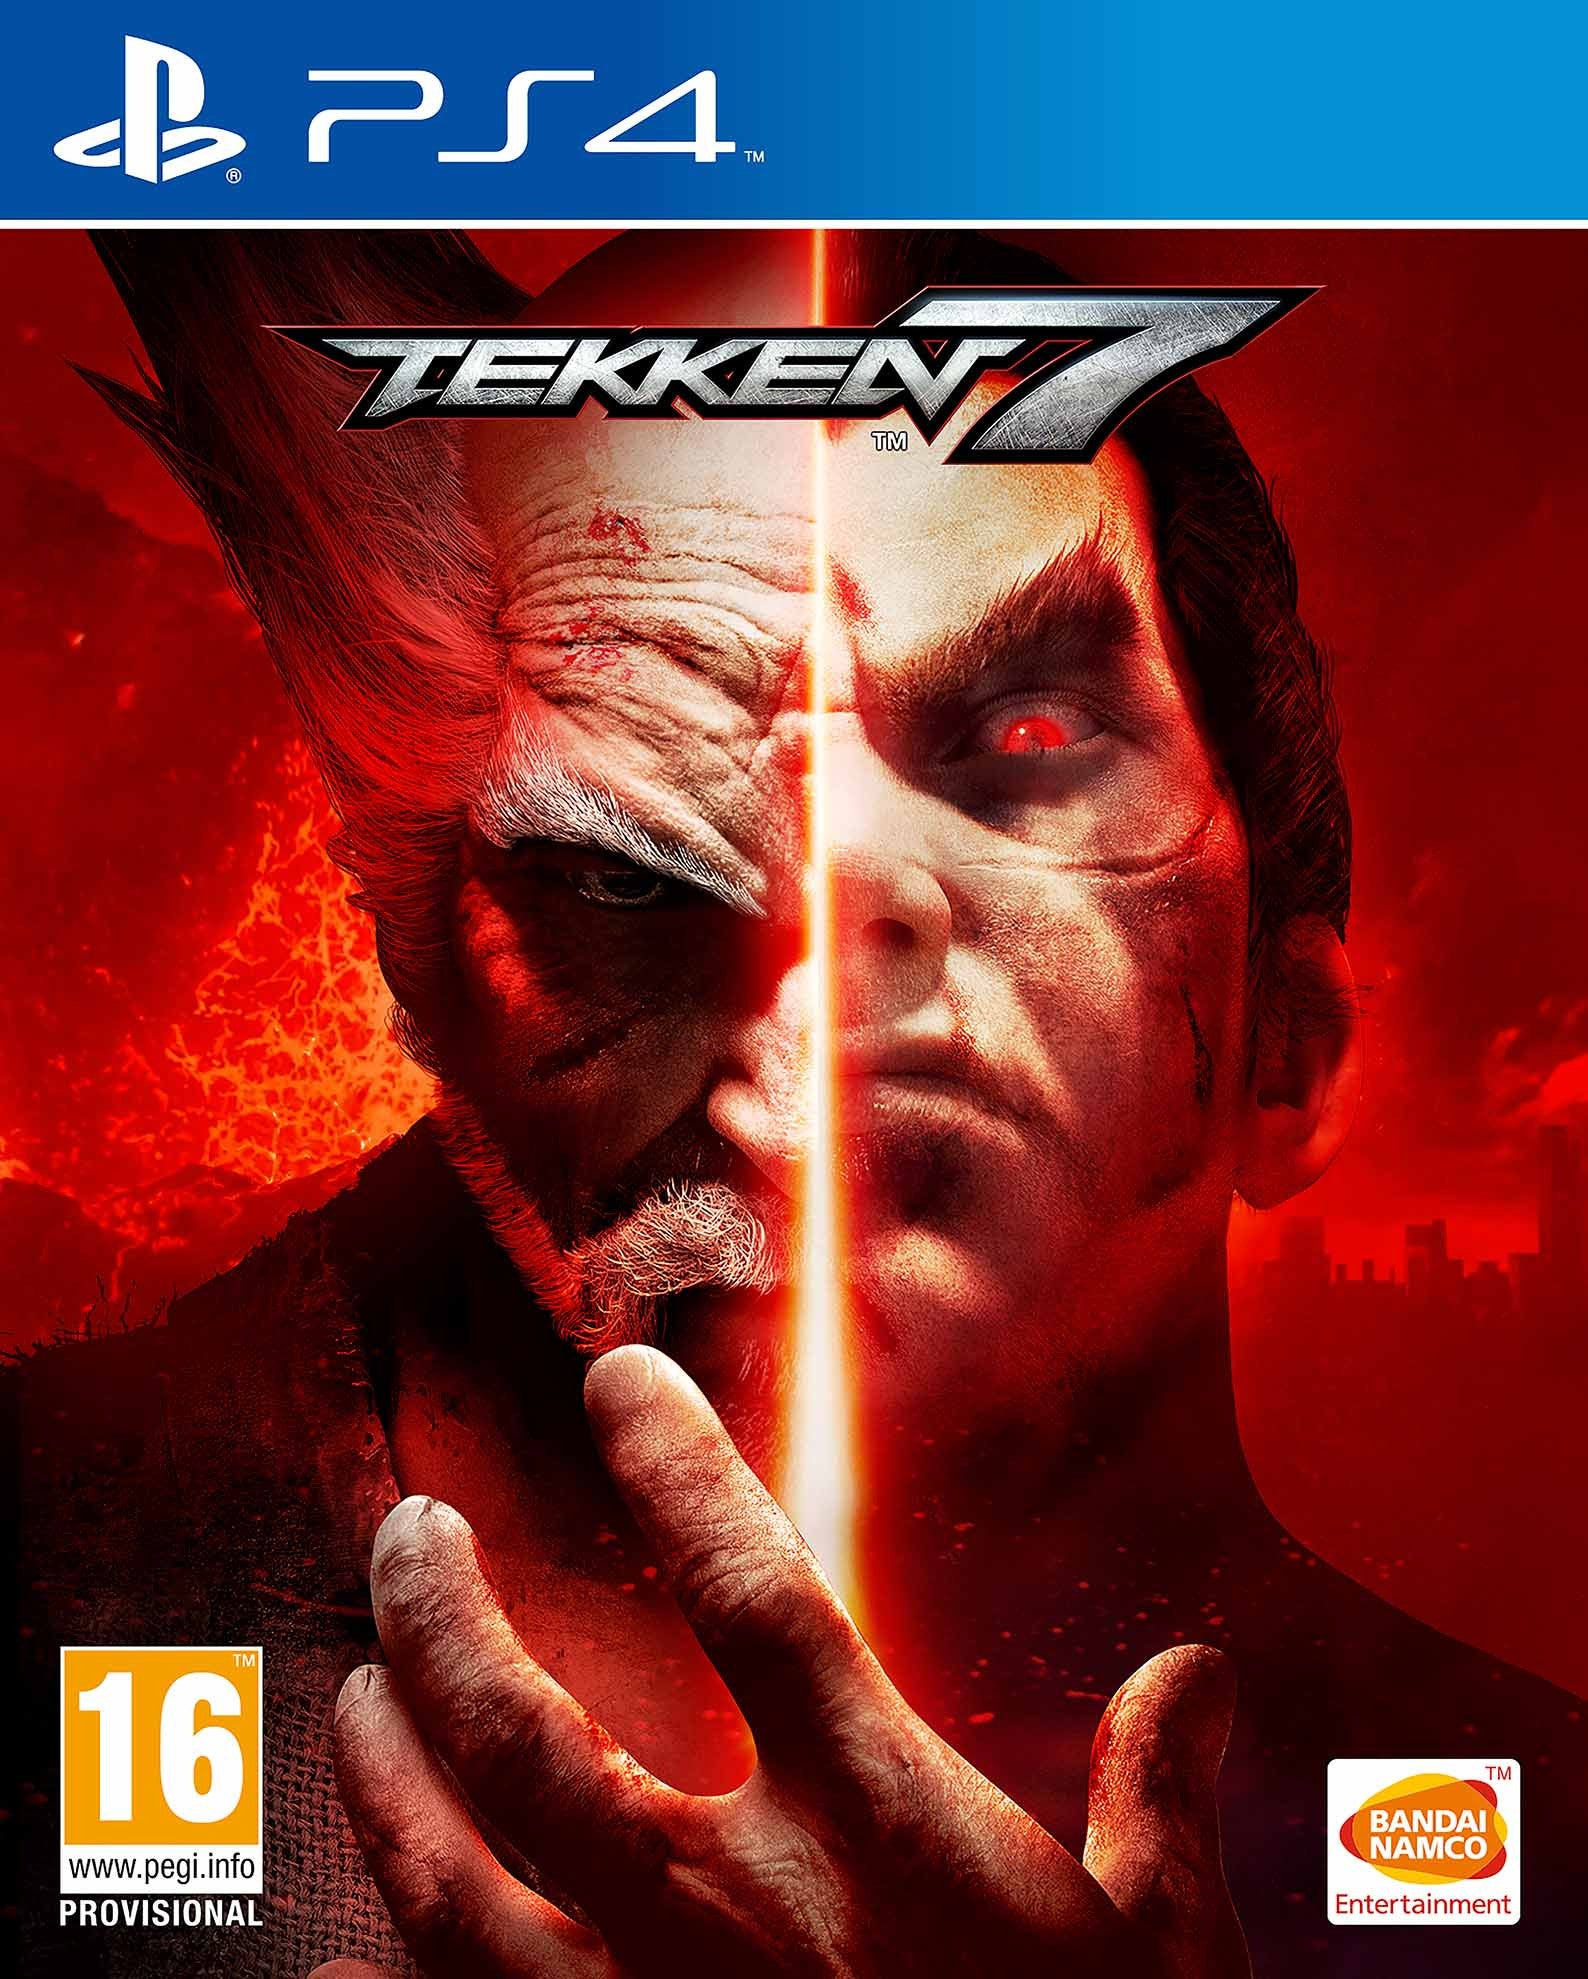 Tekken 7 - PS4 - Collectors Edition - Video Games by Bandai Namco Entertainment The Chelsea Gamer